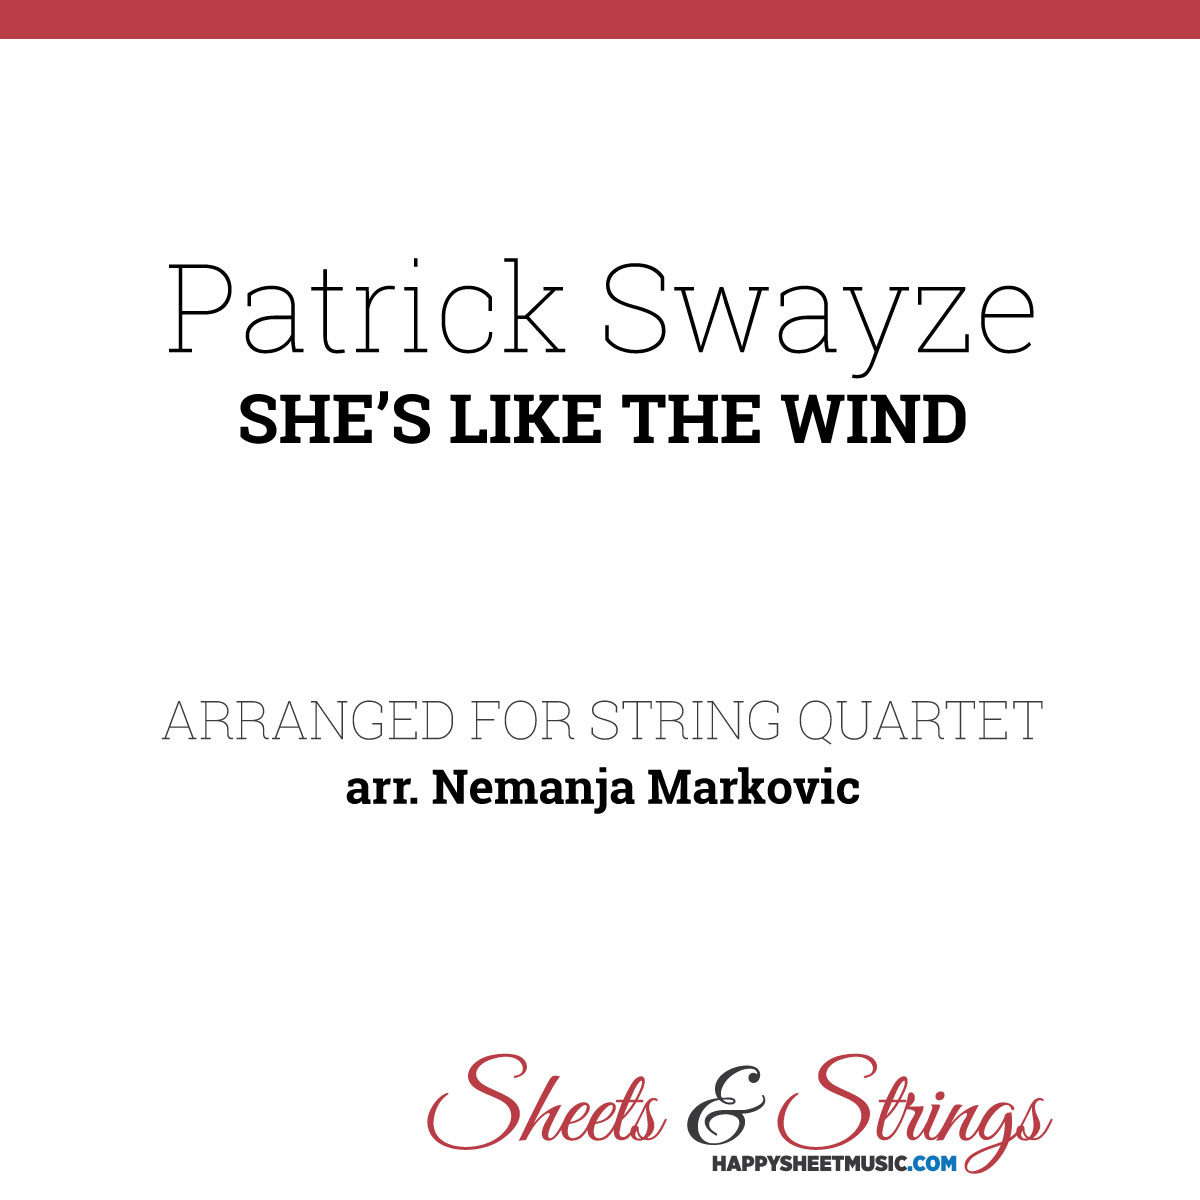 Patrick Swayze - She's Like The Wind - Sheet Music for String Quartet - Music Arrangement for String Quartet